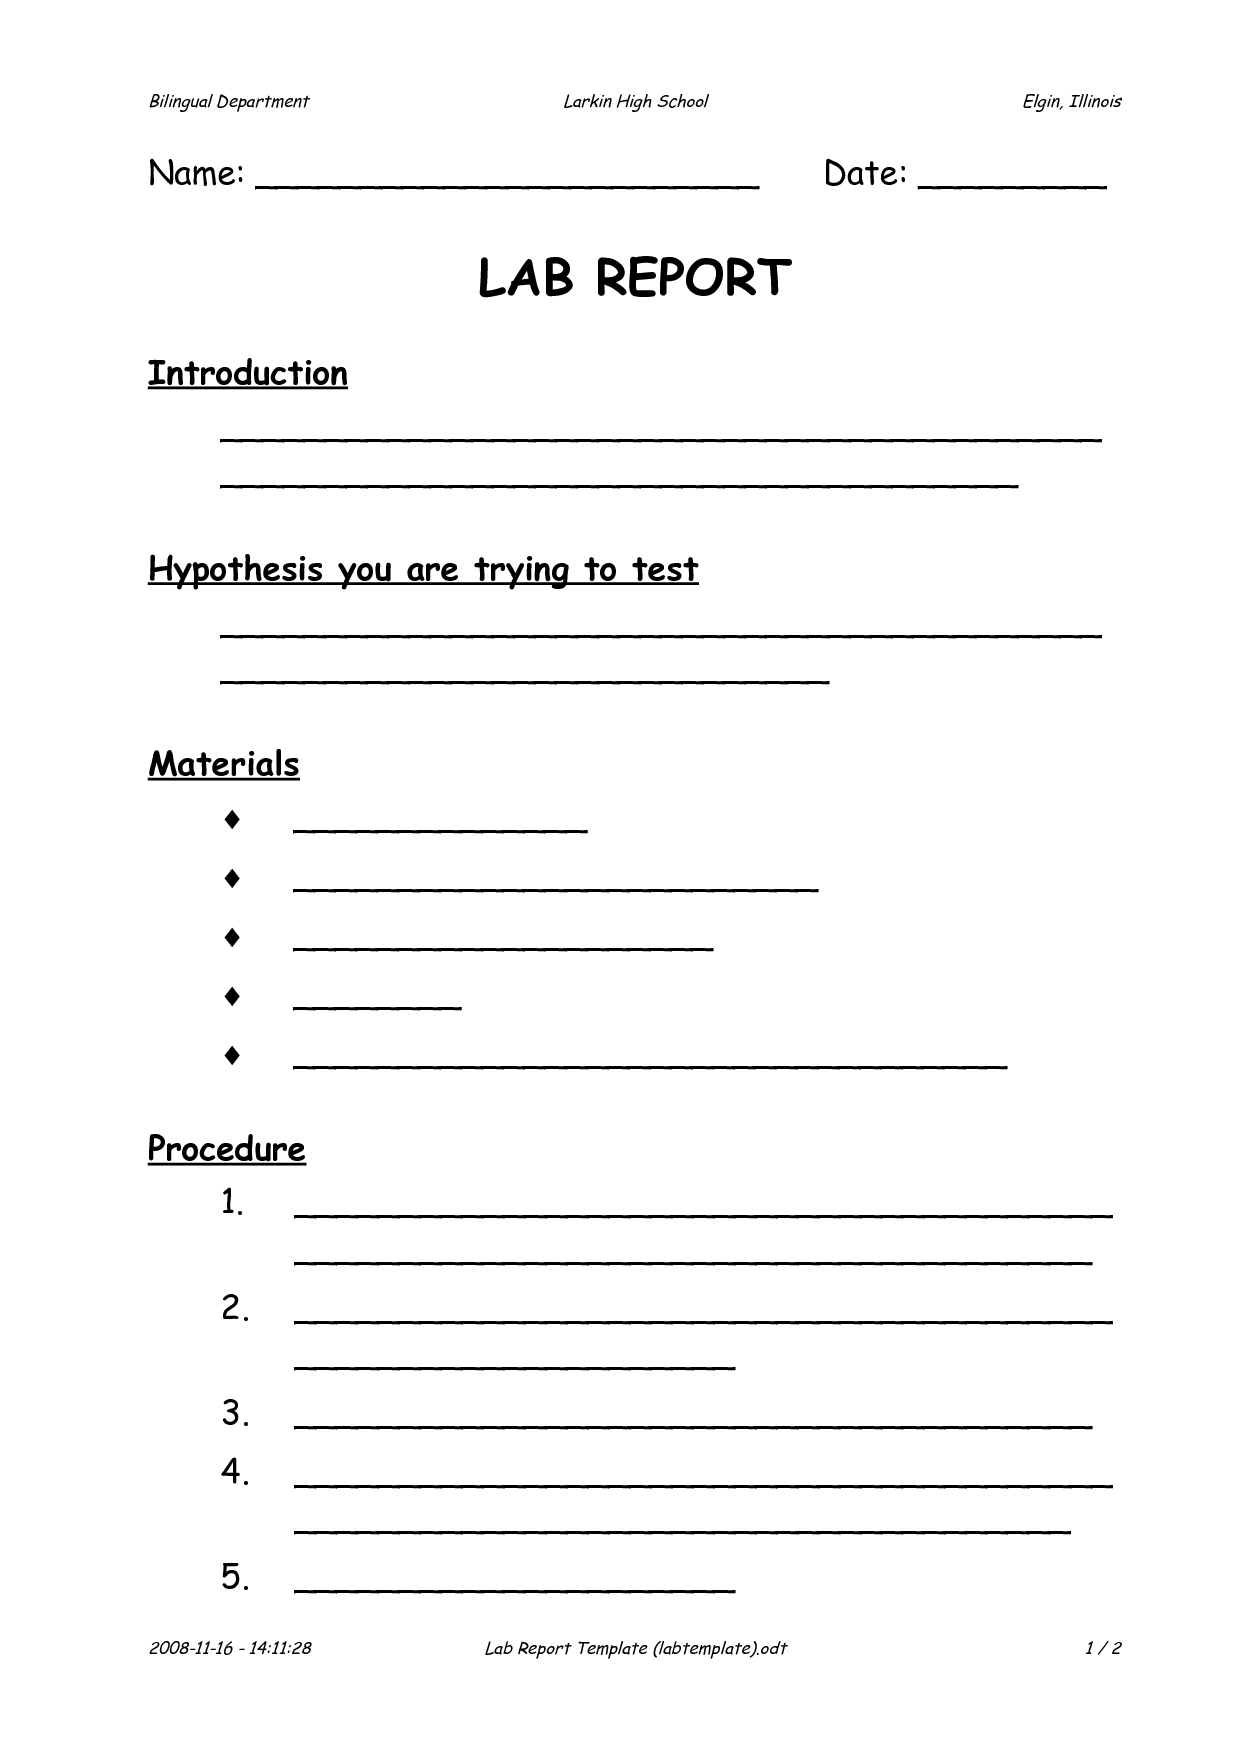 Lab Report Template By Nvh 7glt4bds